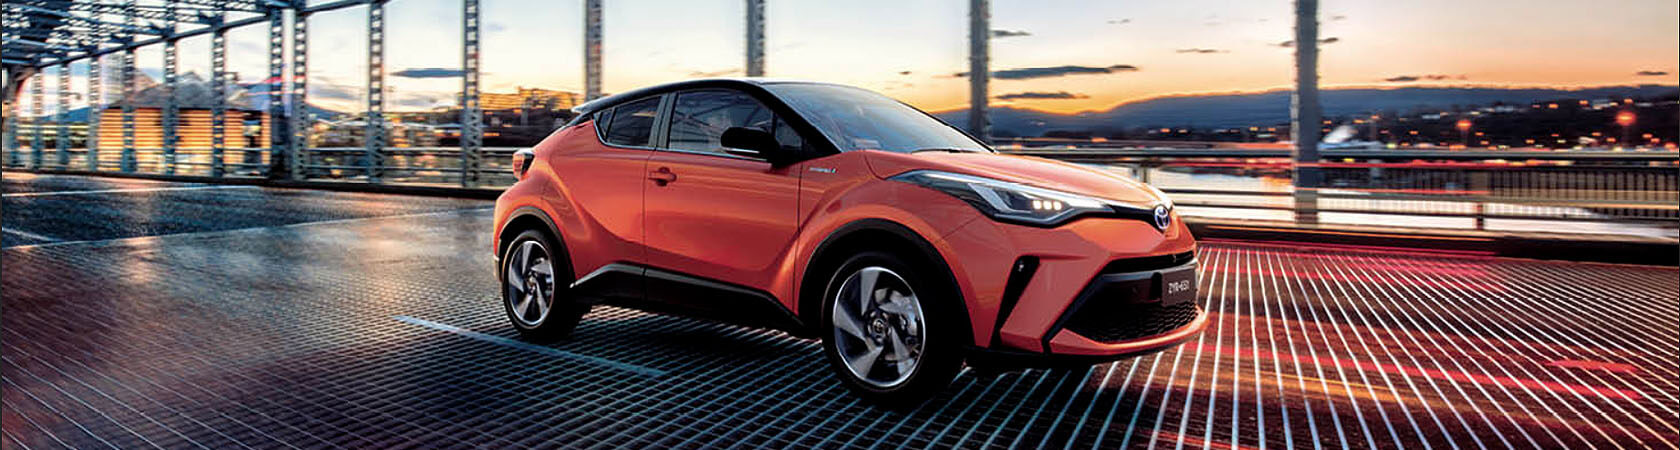 South Morang Toyota C-HR